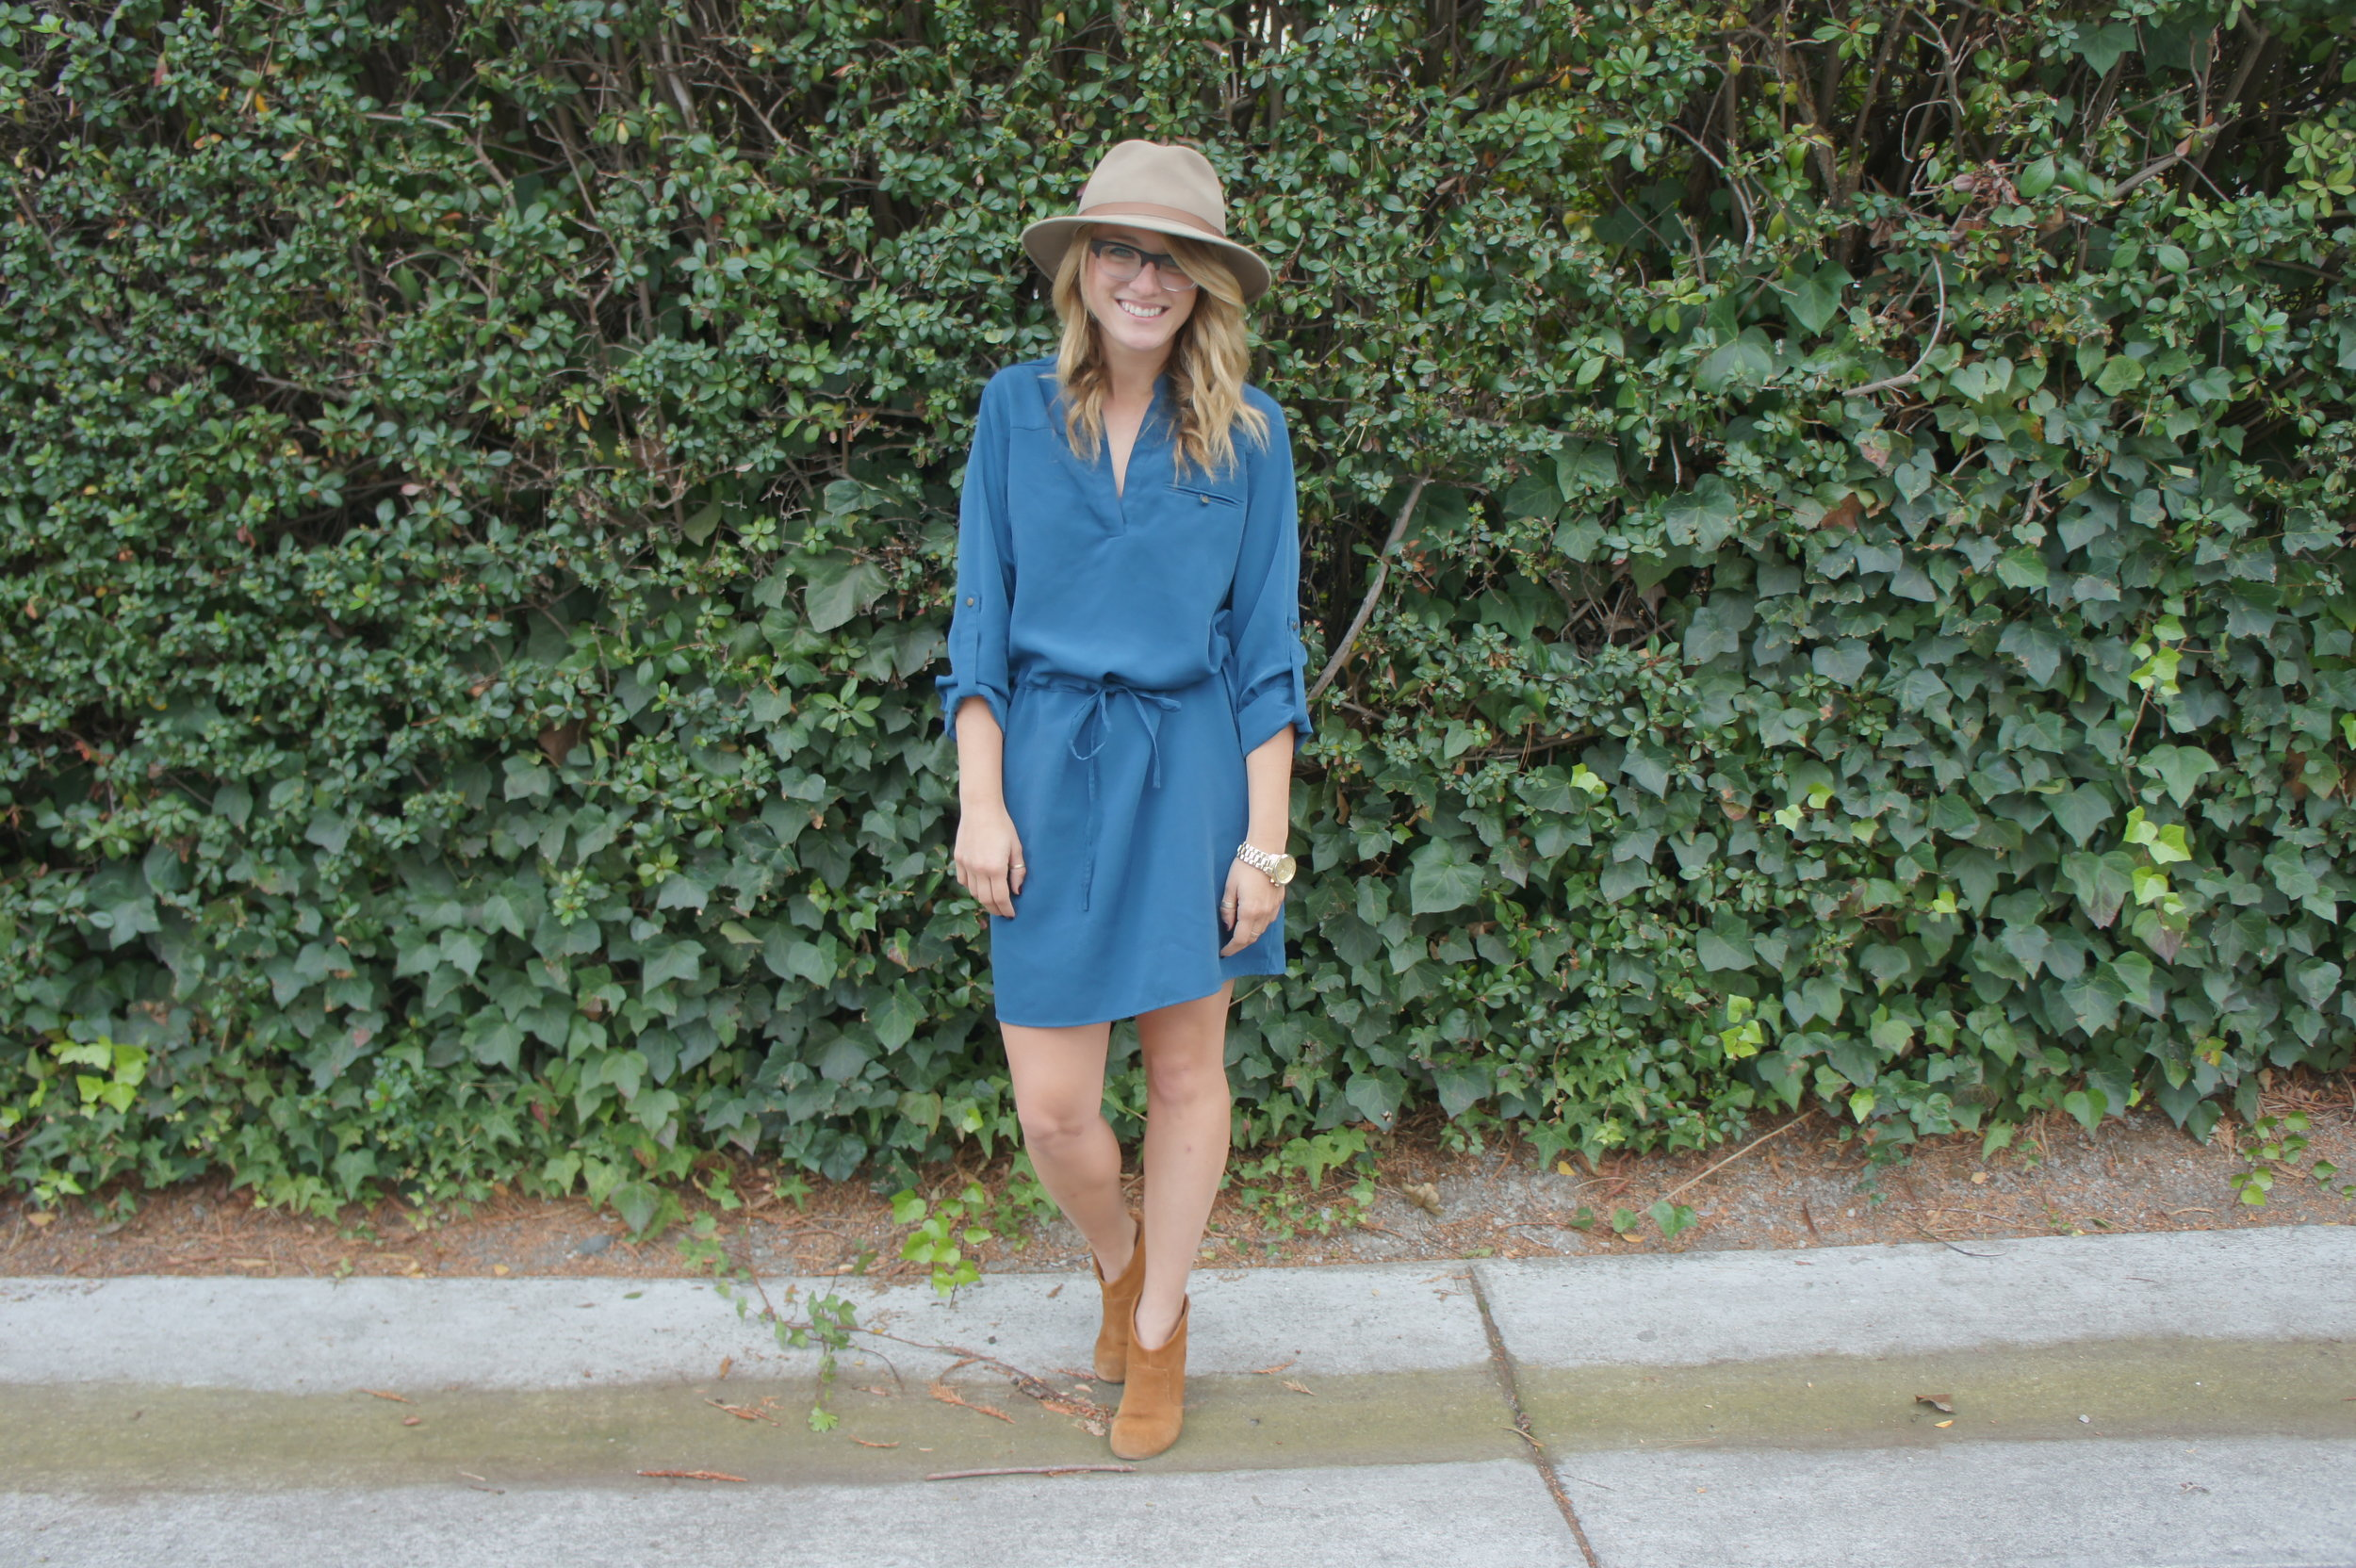 Dress: F21 | Hat: Sidewalk Fair | Shoes: Carlos Santana